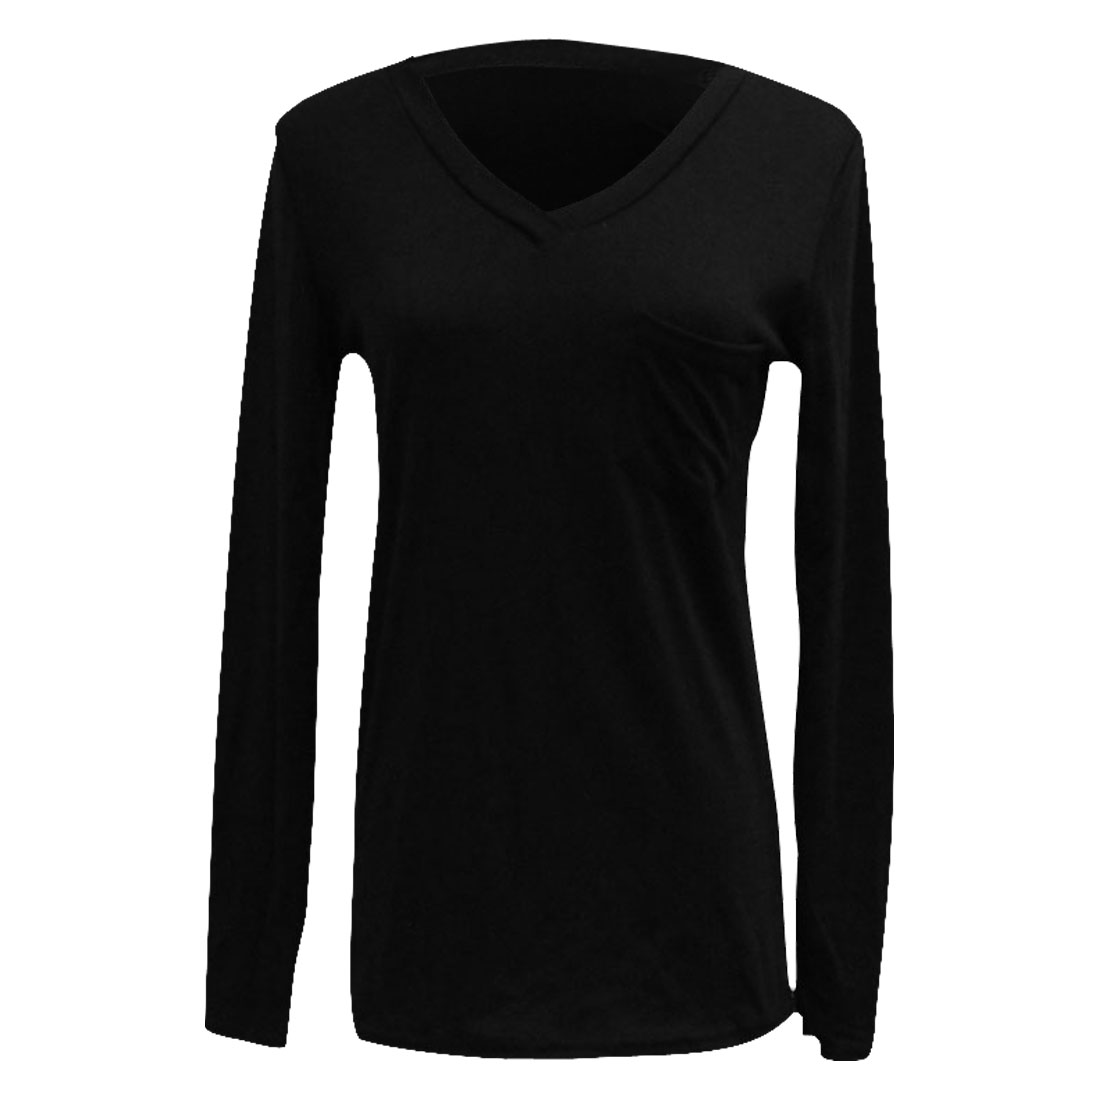 Ladies Black Single Pocket Top Long Sleeve Stretchy Autumn Leisure Top Shirt XS